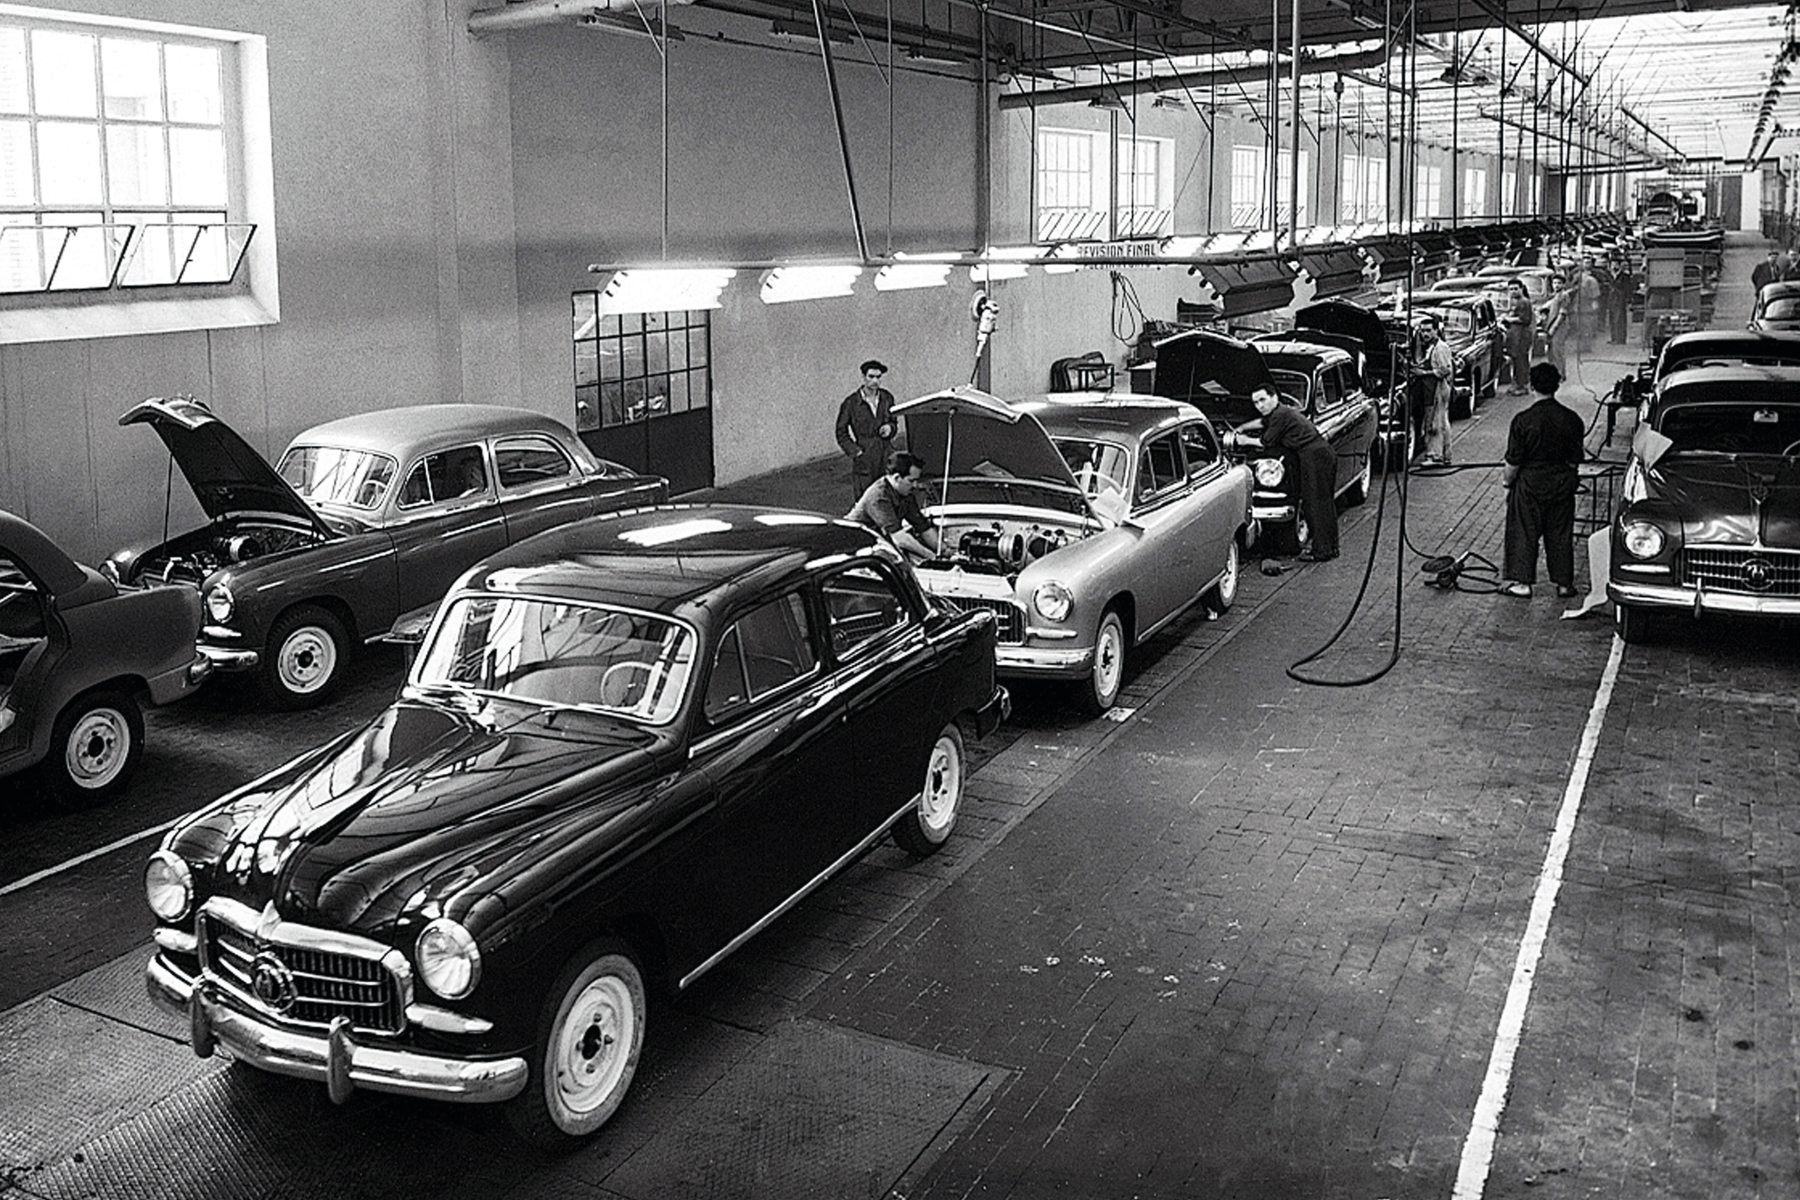 SEAT celebrates 60th anniversary of its first car, the 1400